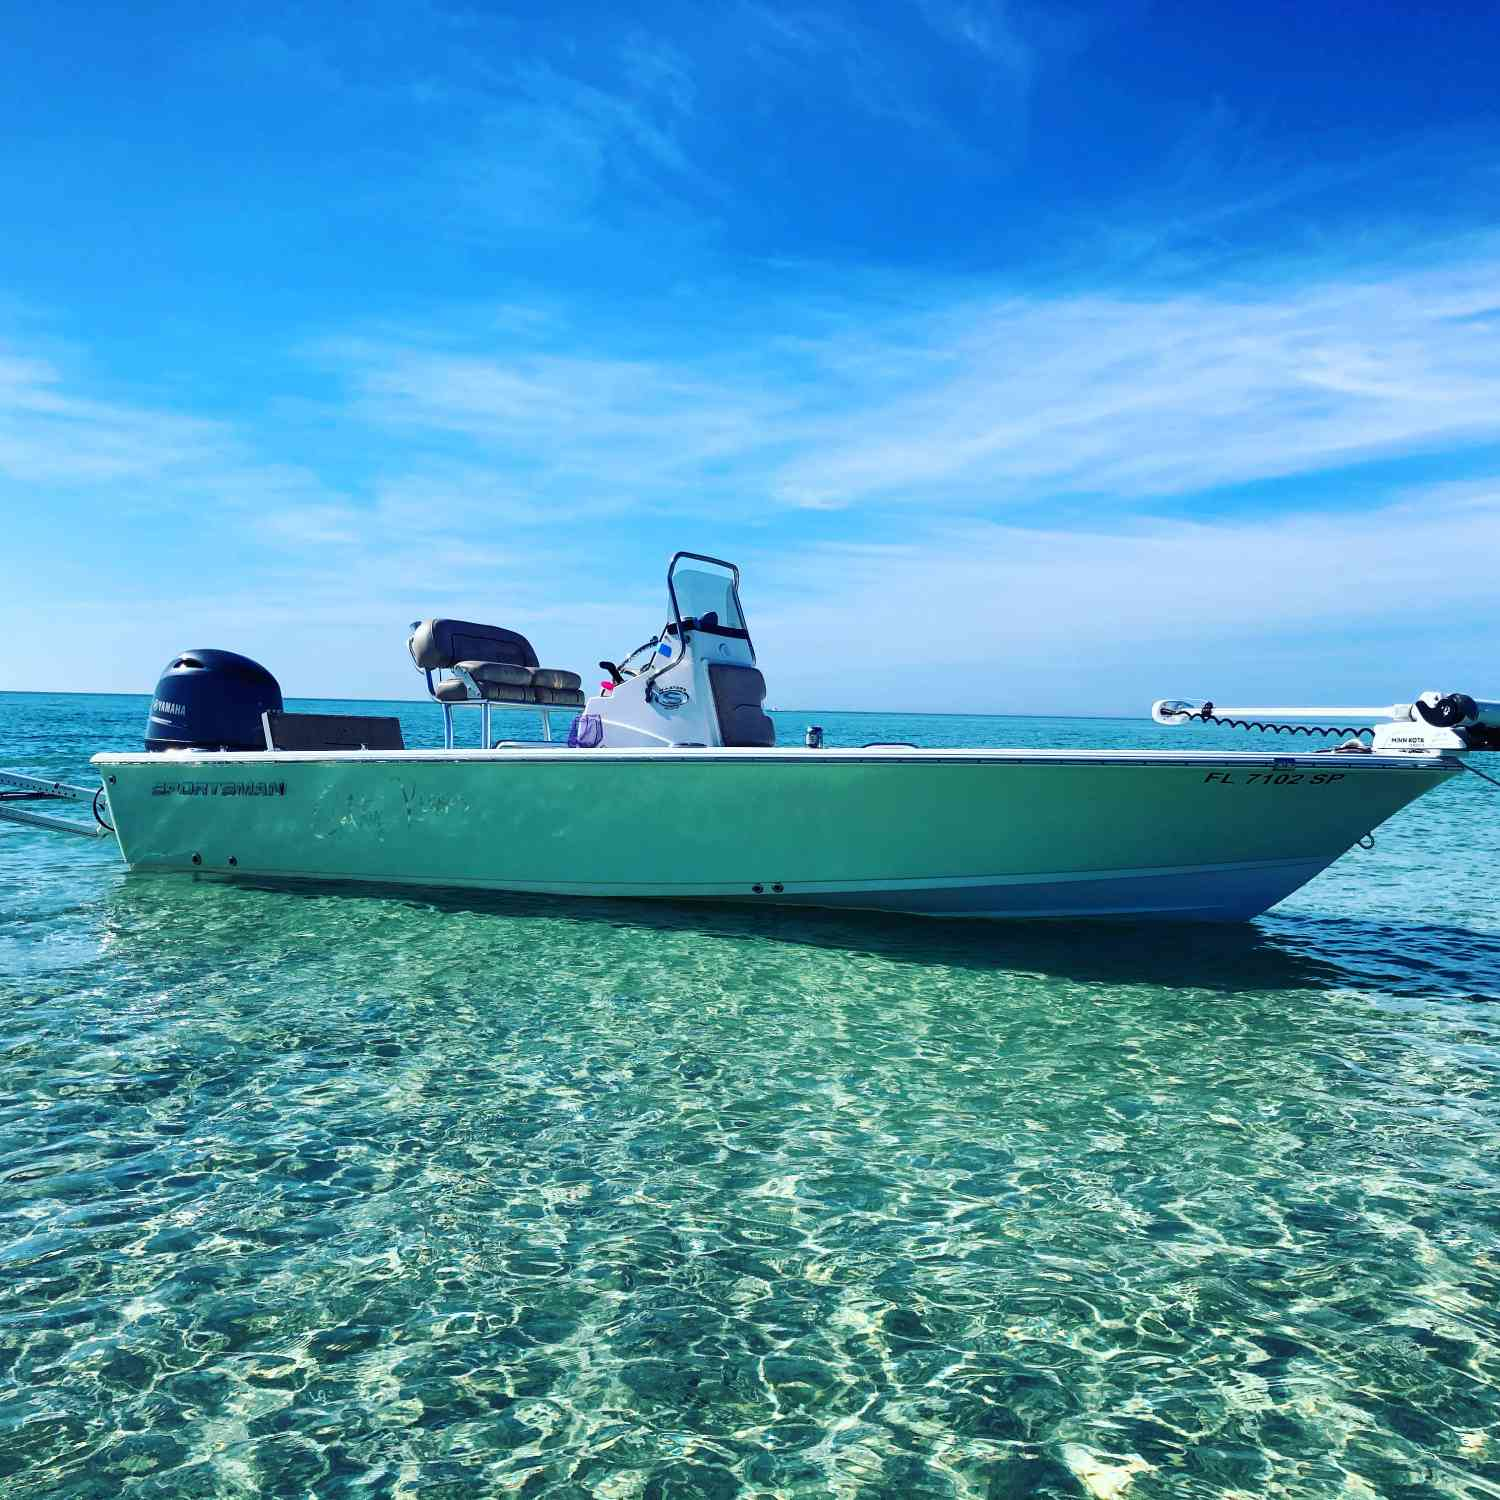 Title: Beach Days - On board their Sportsman Masters 207 Bay Boat - Location: Cayo Costa Fl. Participating in the Photo Contest #SportsmanFebruary2021